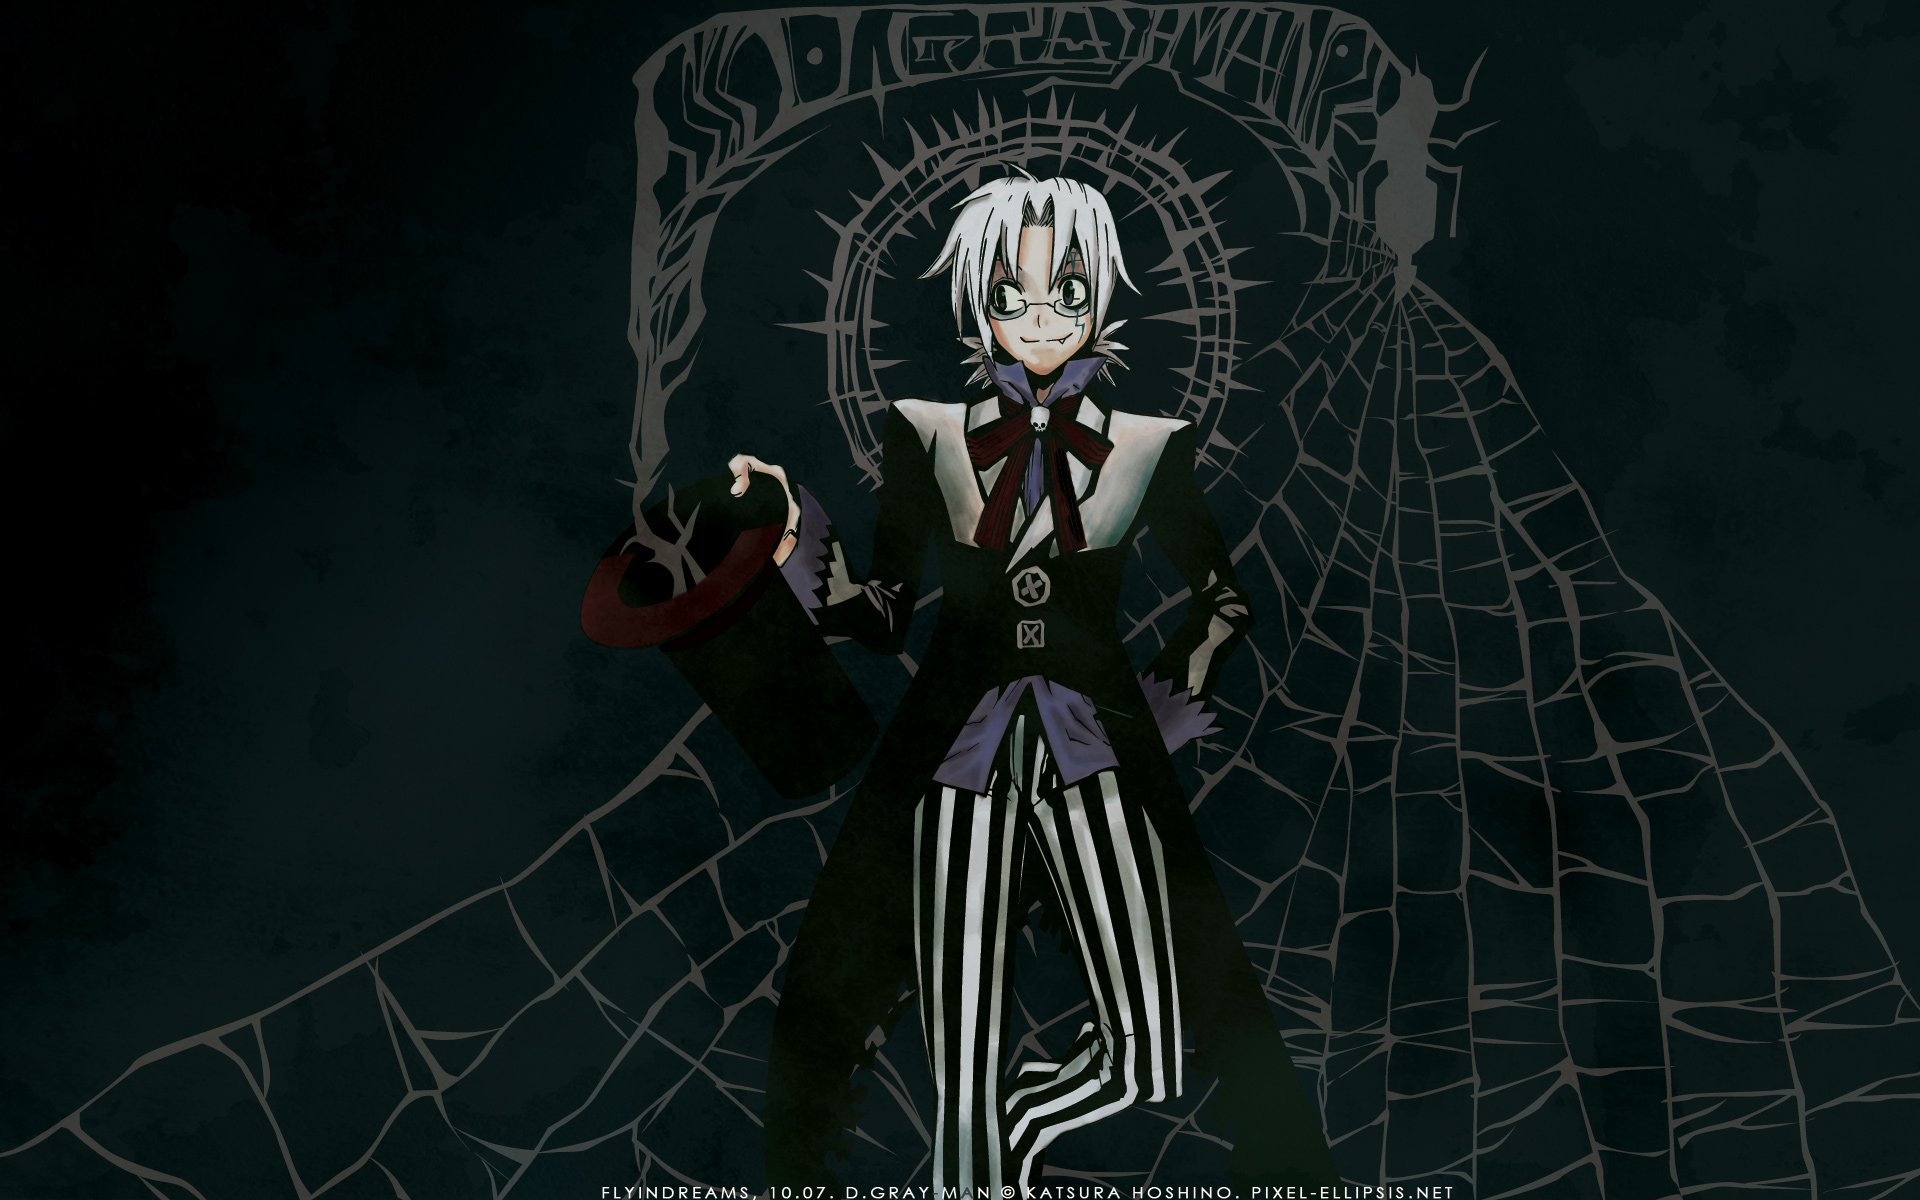 dgrayman full hd wallpaper and background image